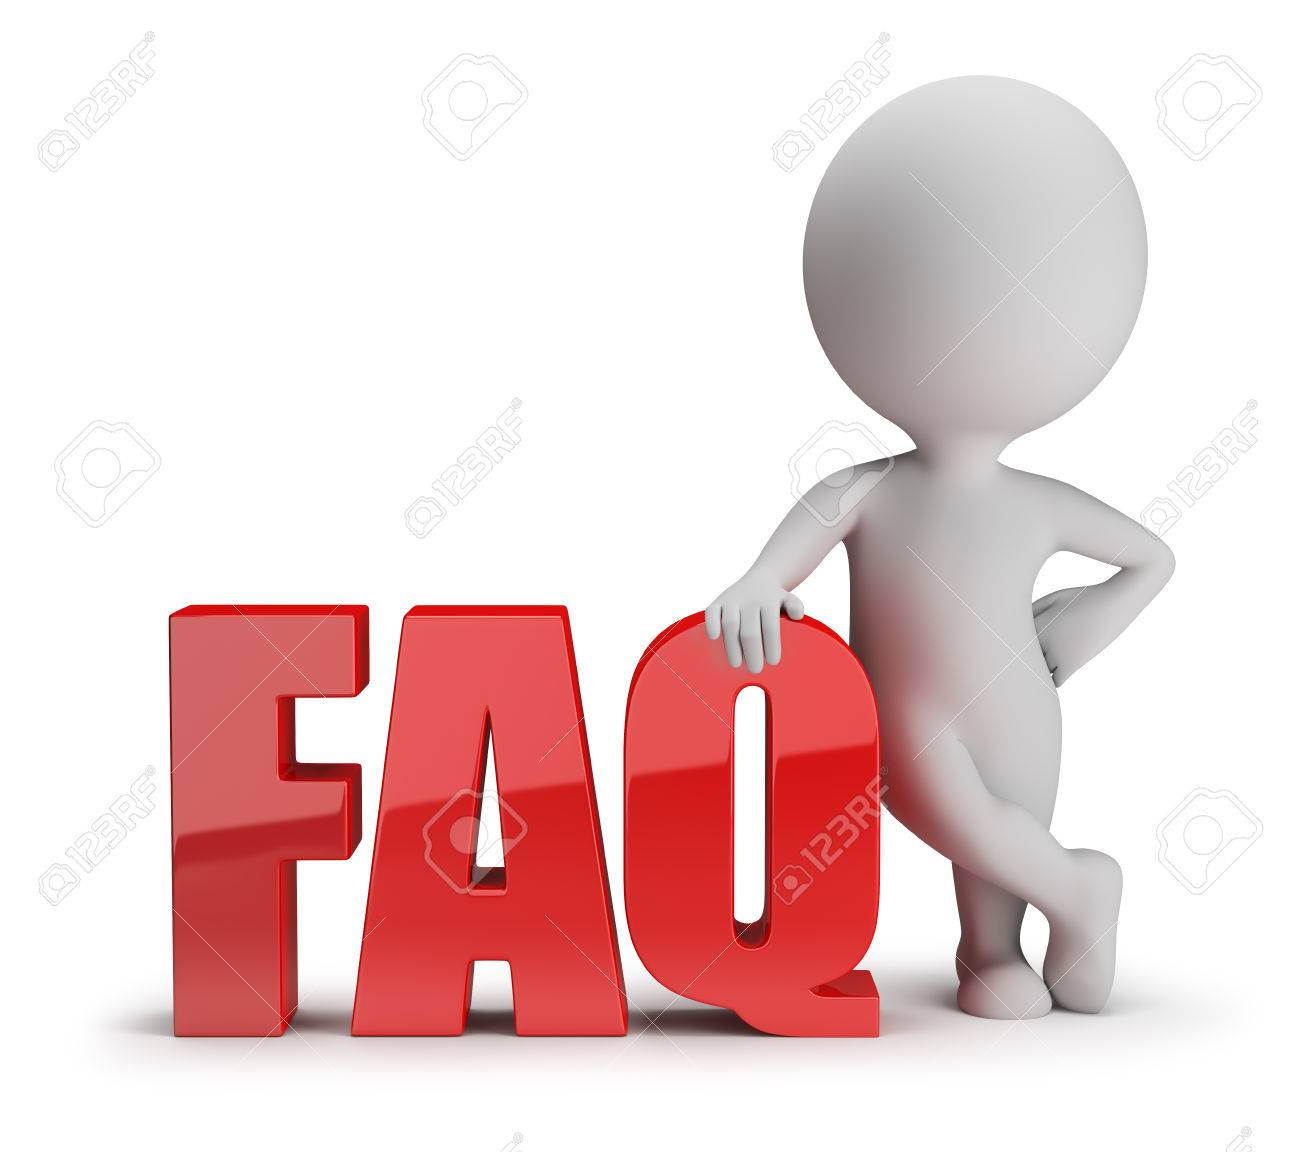 3d small person standing next to FAQ 3d image White background - 27727217